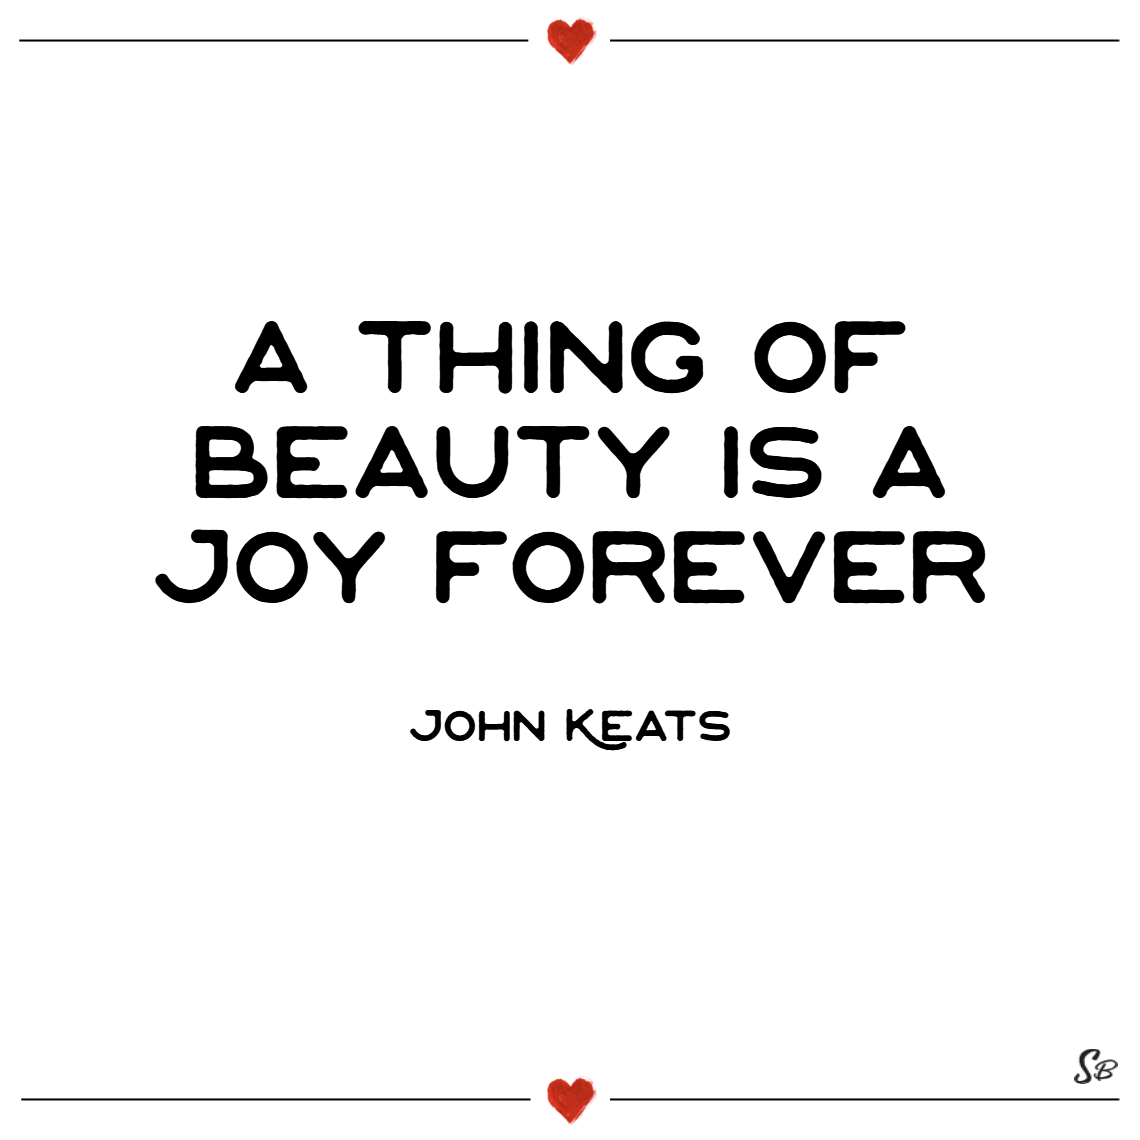 A thing of beauty is a joy forever. – john keats